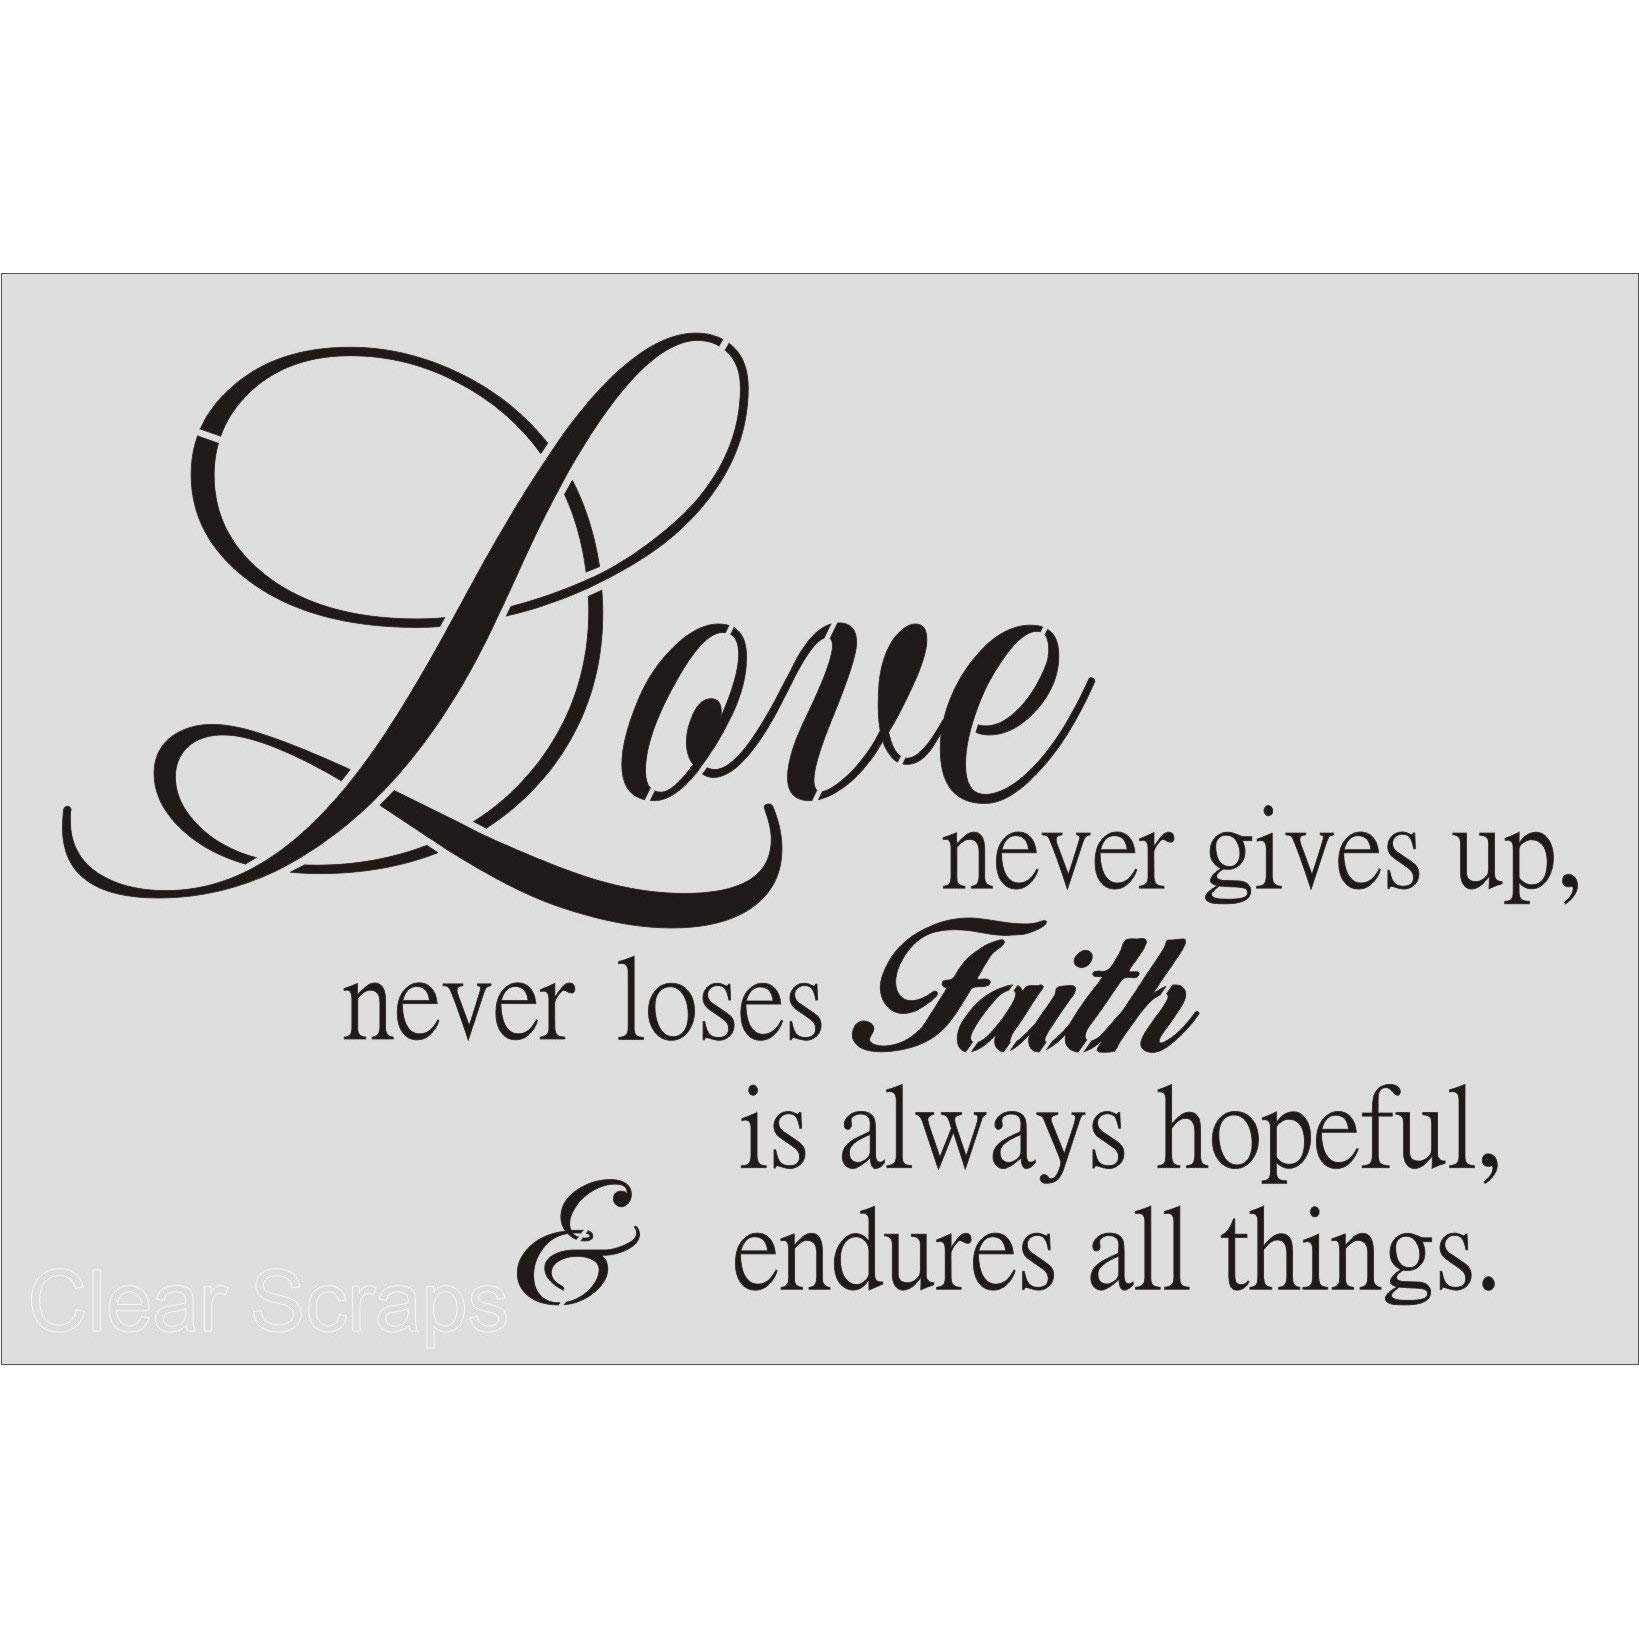 CLEARSNAP Clear Scraps SSMWLOVEENDURES24X36 Wall Stencils, 24'' x 36'', Love Endures, Clear by CLEARSNAP